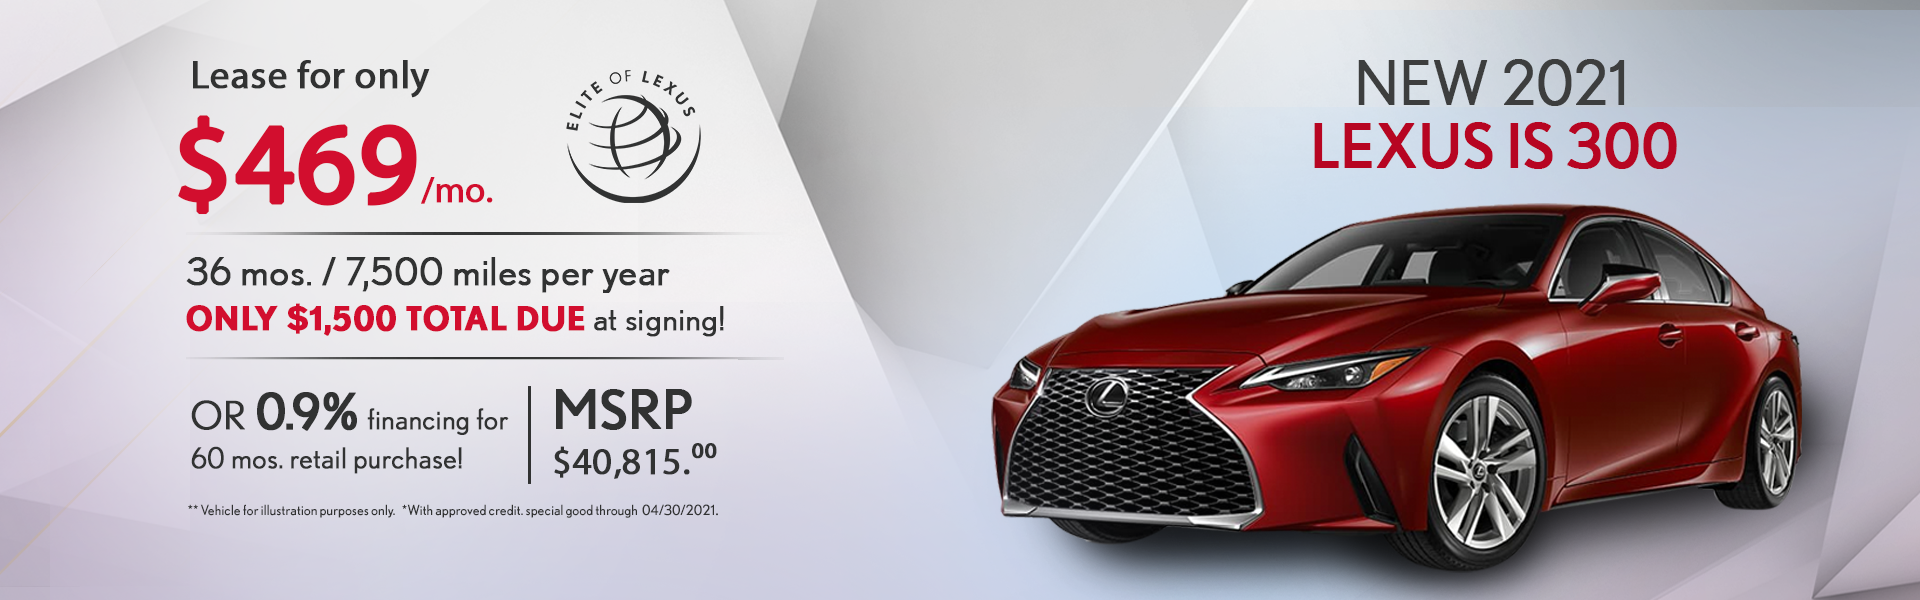 Lexus IS 300 Lease Special